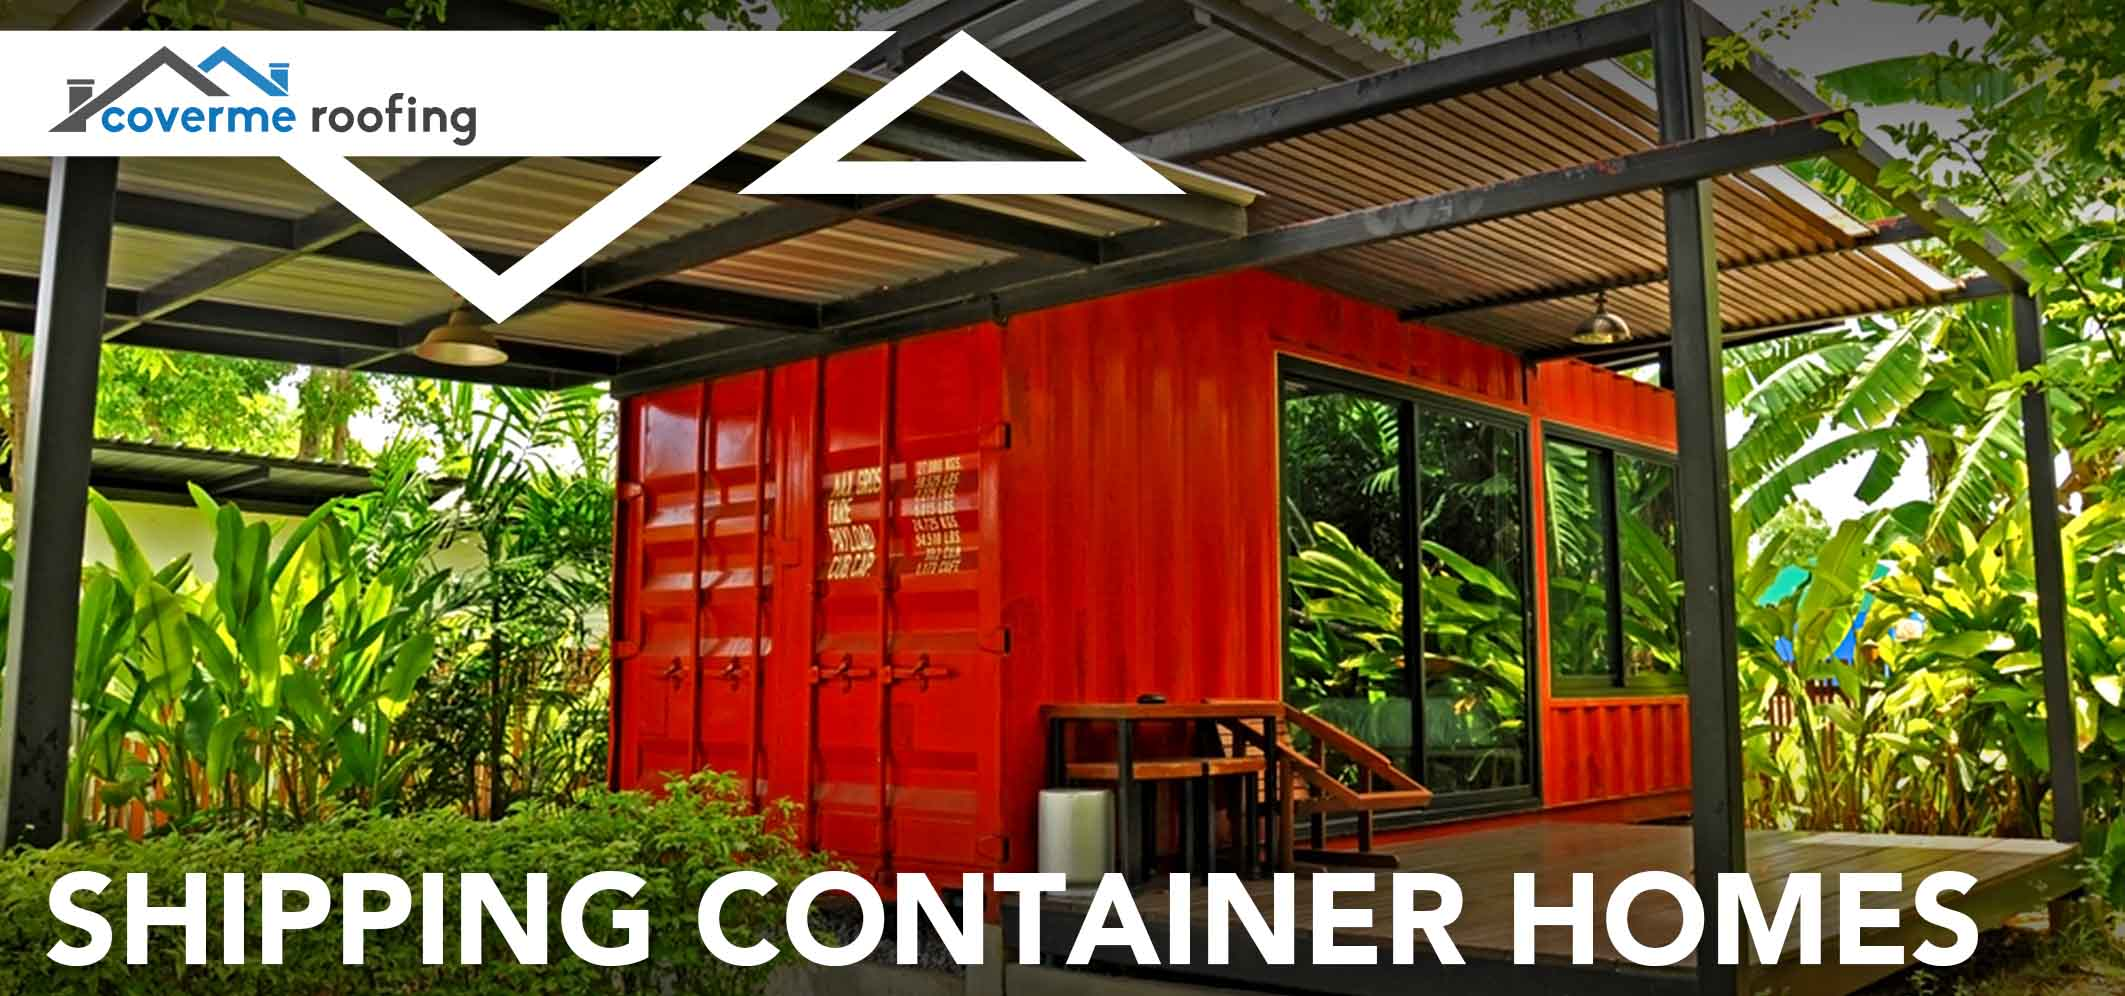 Trend Shipping Container Homes Cover Me Roofing